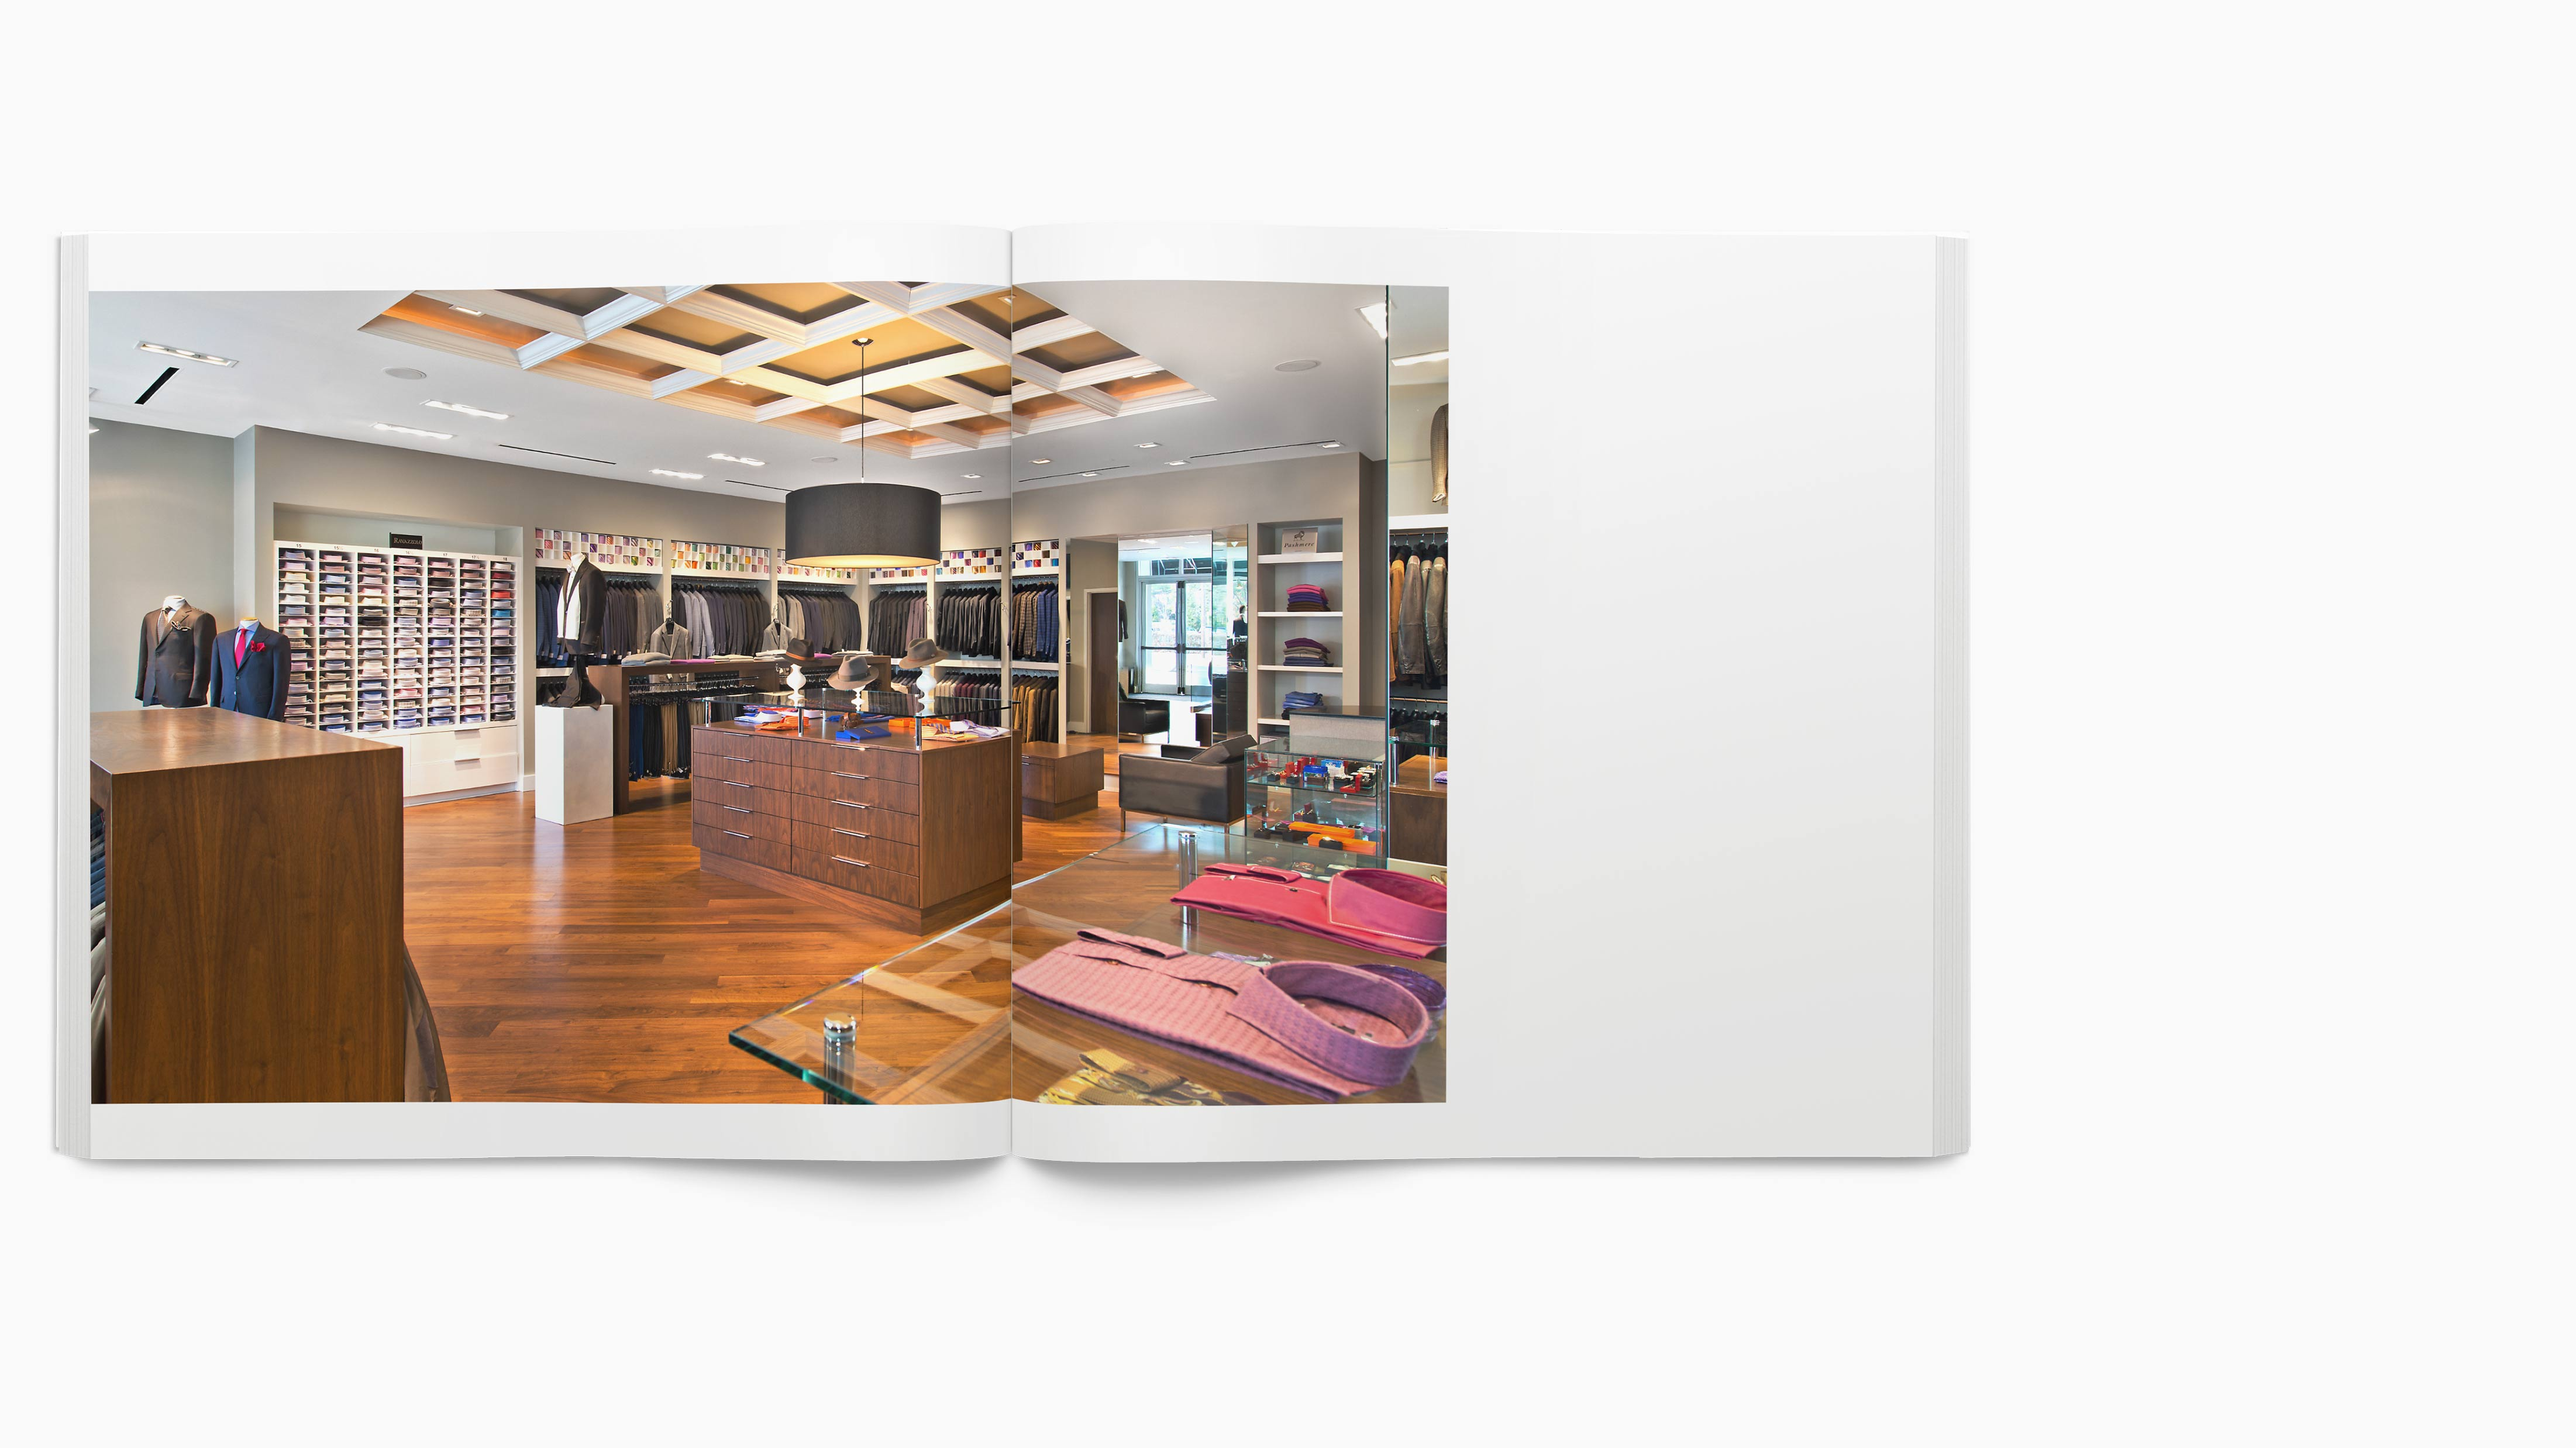 gtm_archtiects-print-book-interior-3-16x9